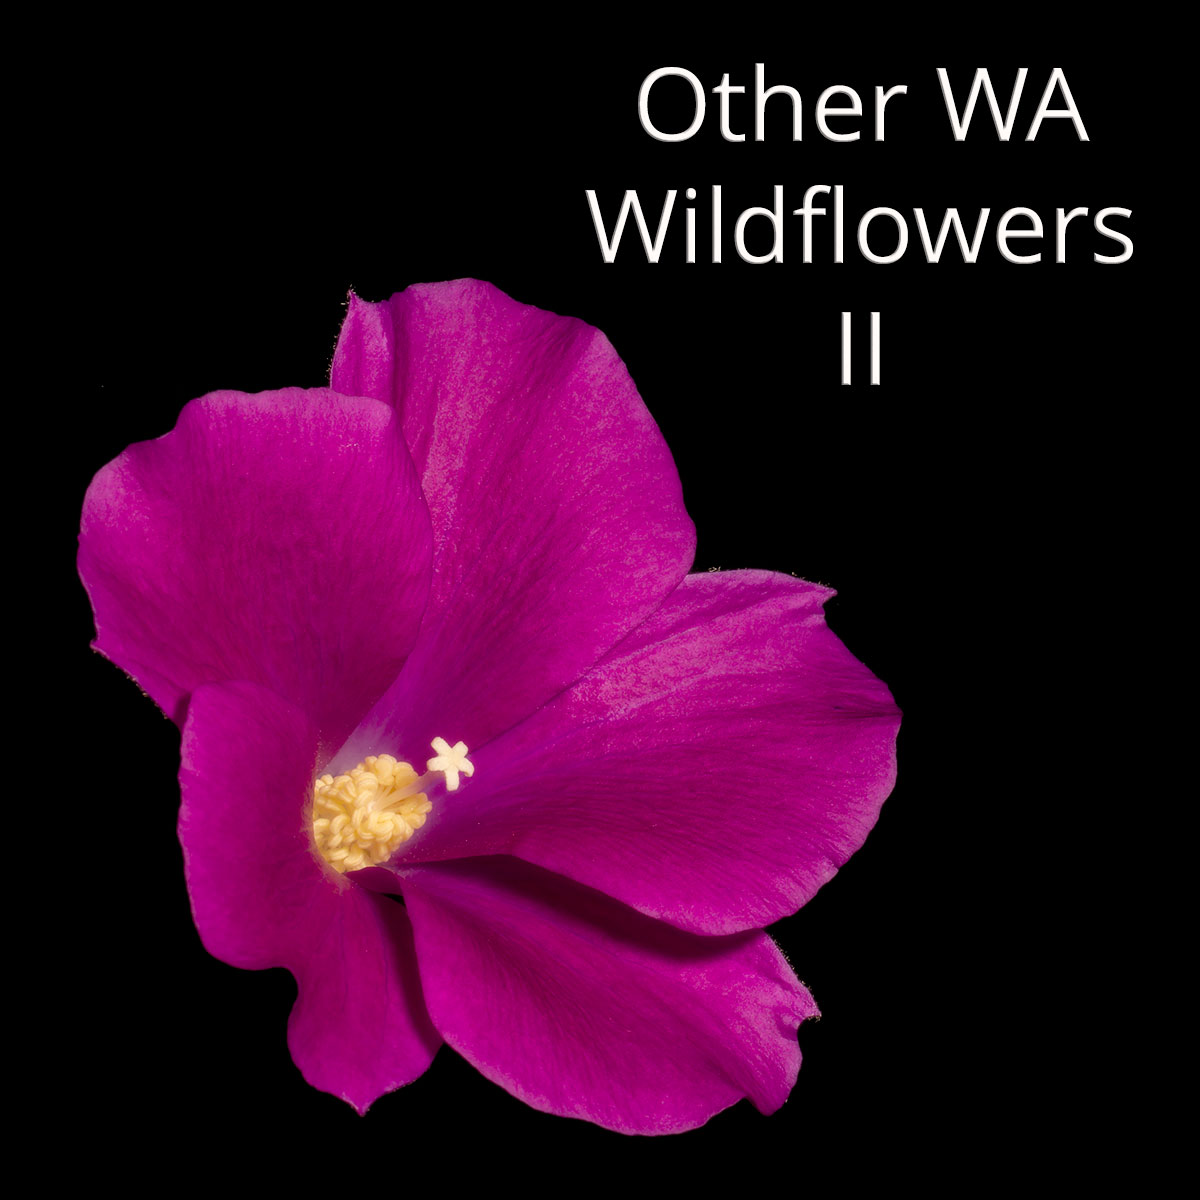 South west WA wildflower: lilac hibiscus (Alyogyne huegelii)